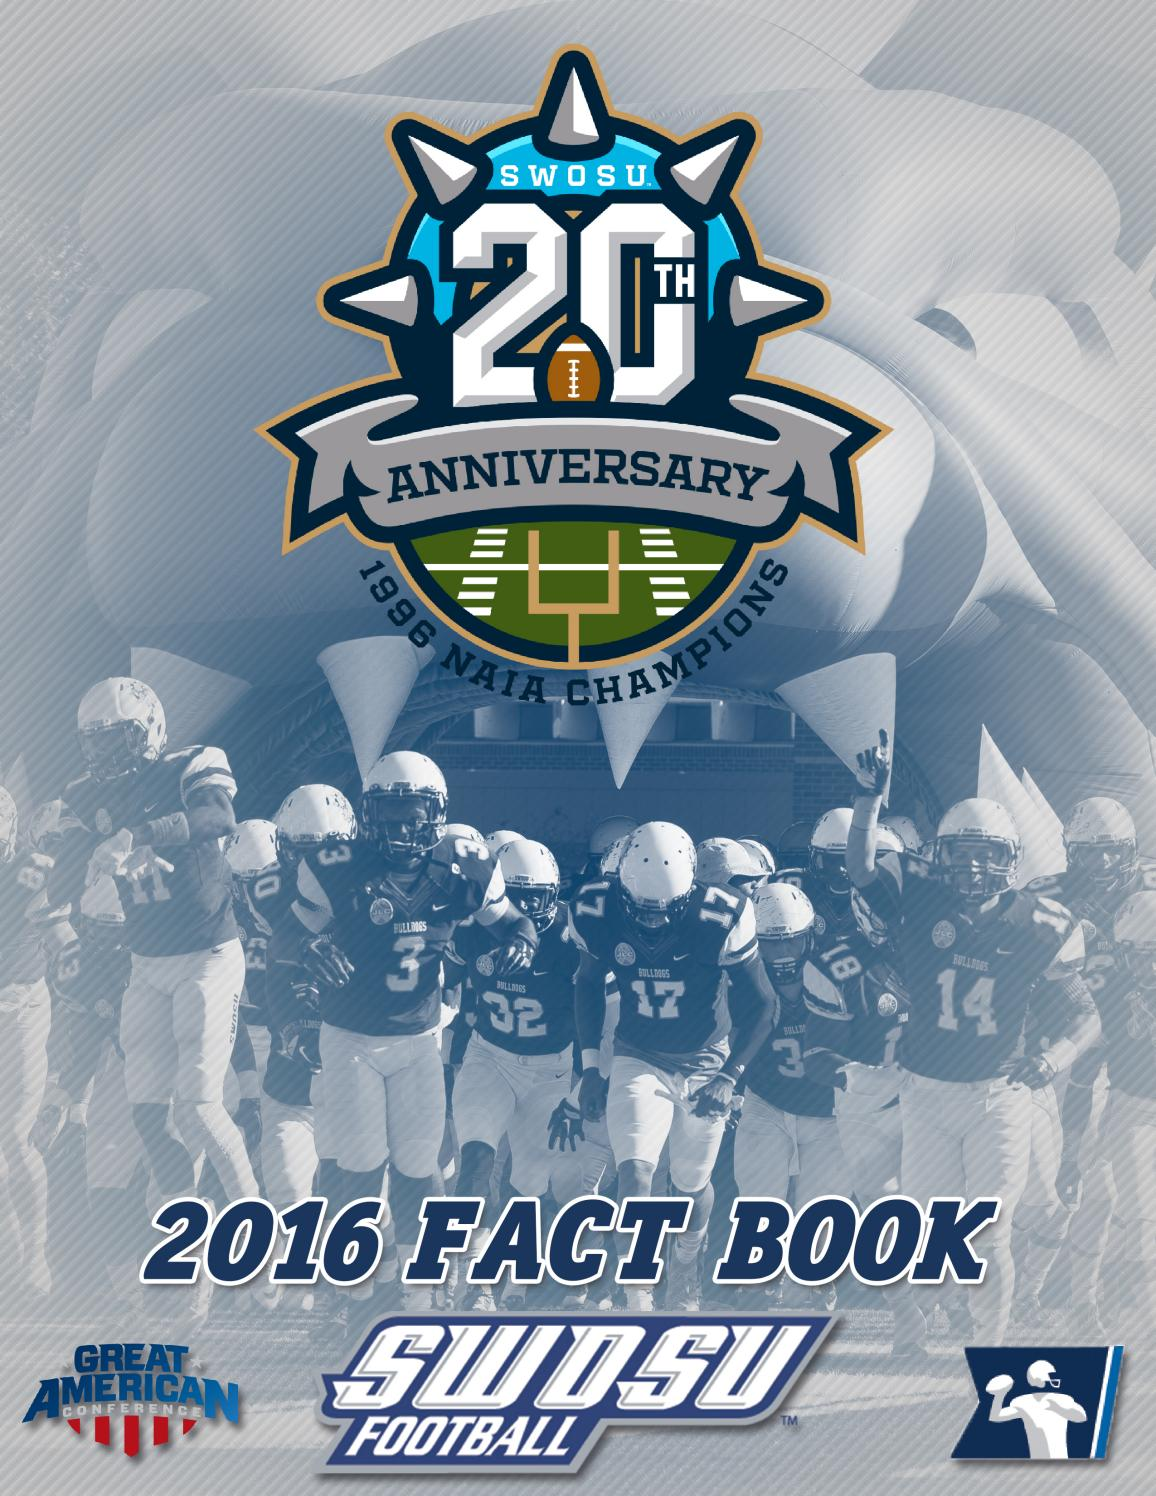 2016 Swosu Football Fact Book By Doug Self Issuu 1987 S10 25l Wiring Forum